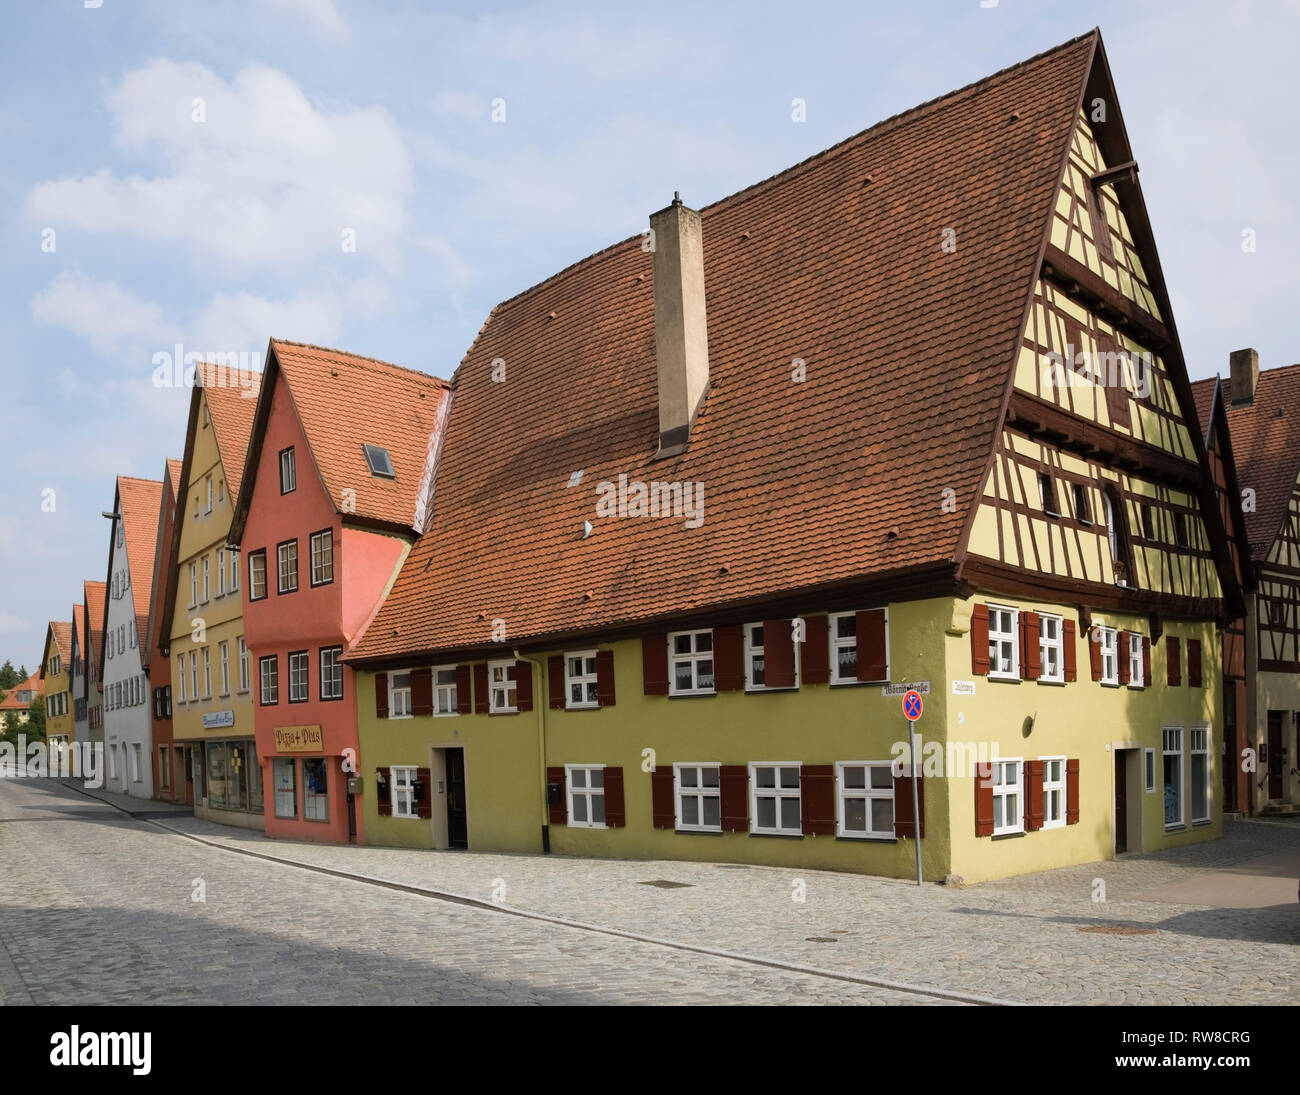 Gingerbread style commercial and residential apartment buildings in the medieval town of Dinkelsbuhl in late summer, Germany - Stock Image